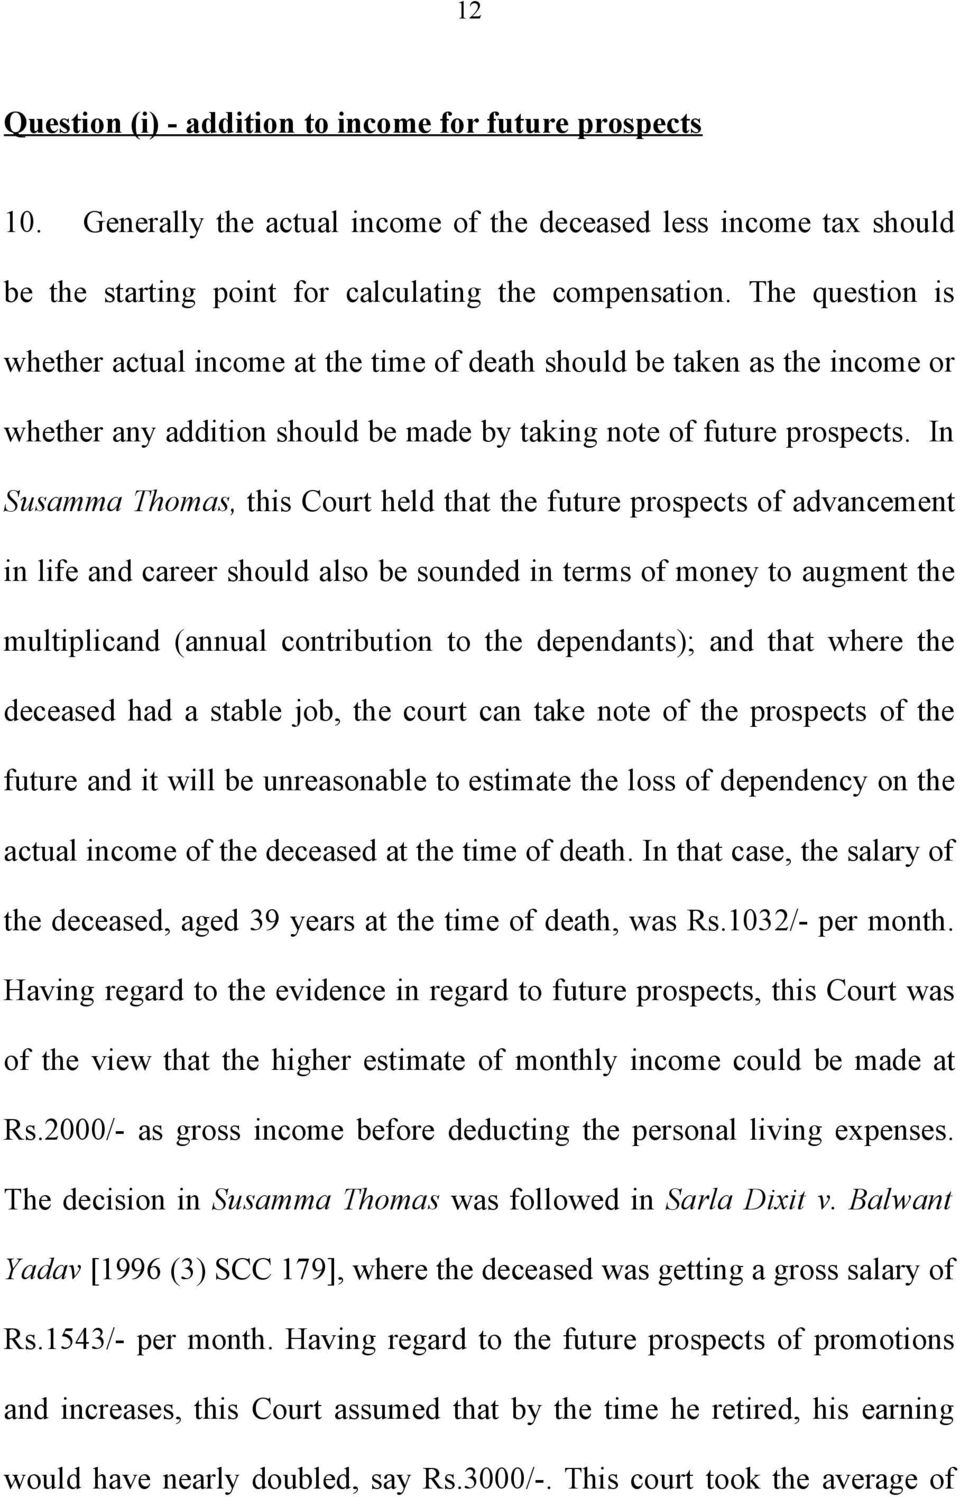 In Susamma Thomas, this Court held that the future prospects of advancement in life and career should also be sounded in terms of money to augment the multiplicand (annual contribution to the